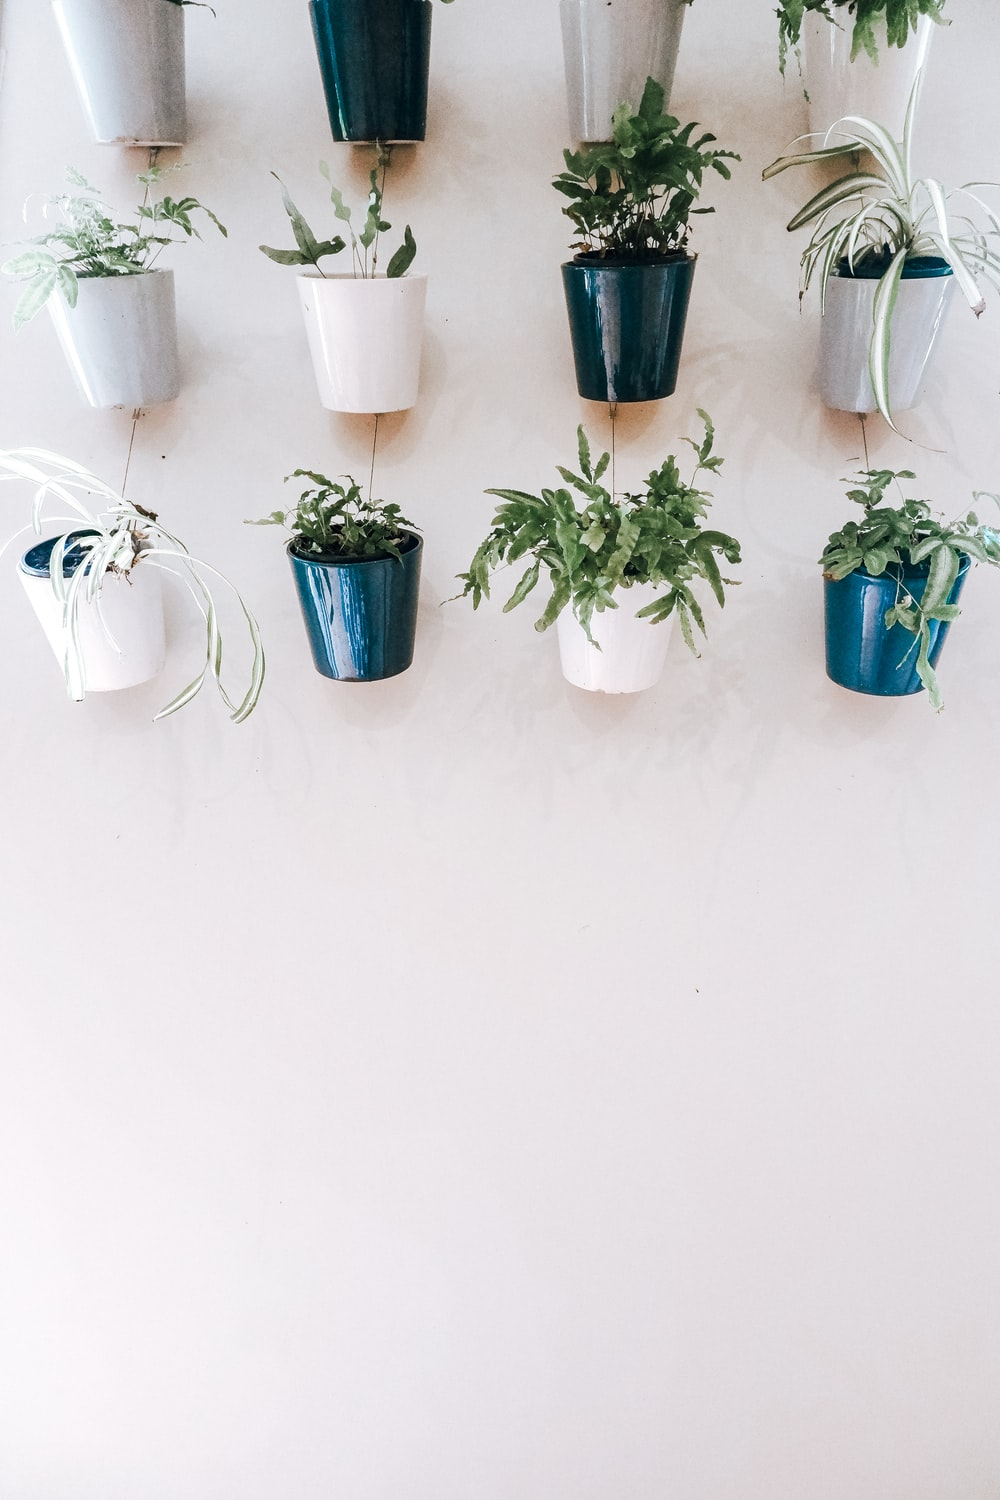 green potted plants on white ceramic pots